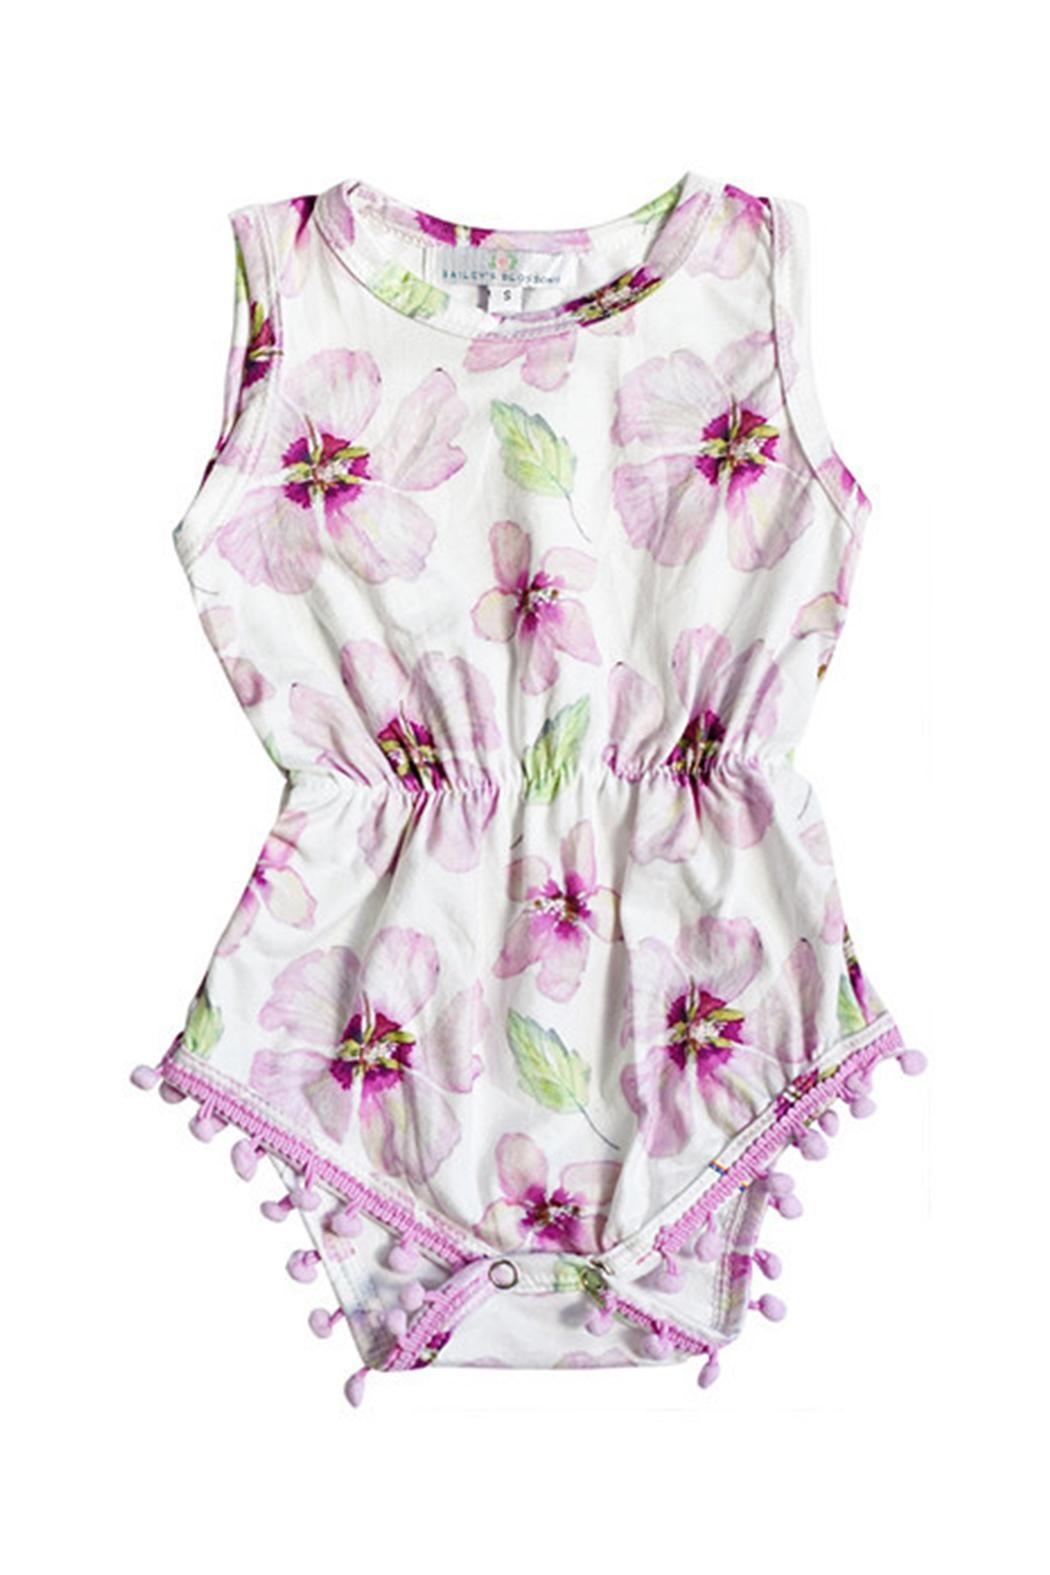 60fb3bcd2 Bailey s Blossoms Nora Pompom Romper from California by Ollie N ...